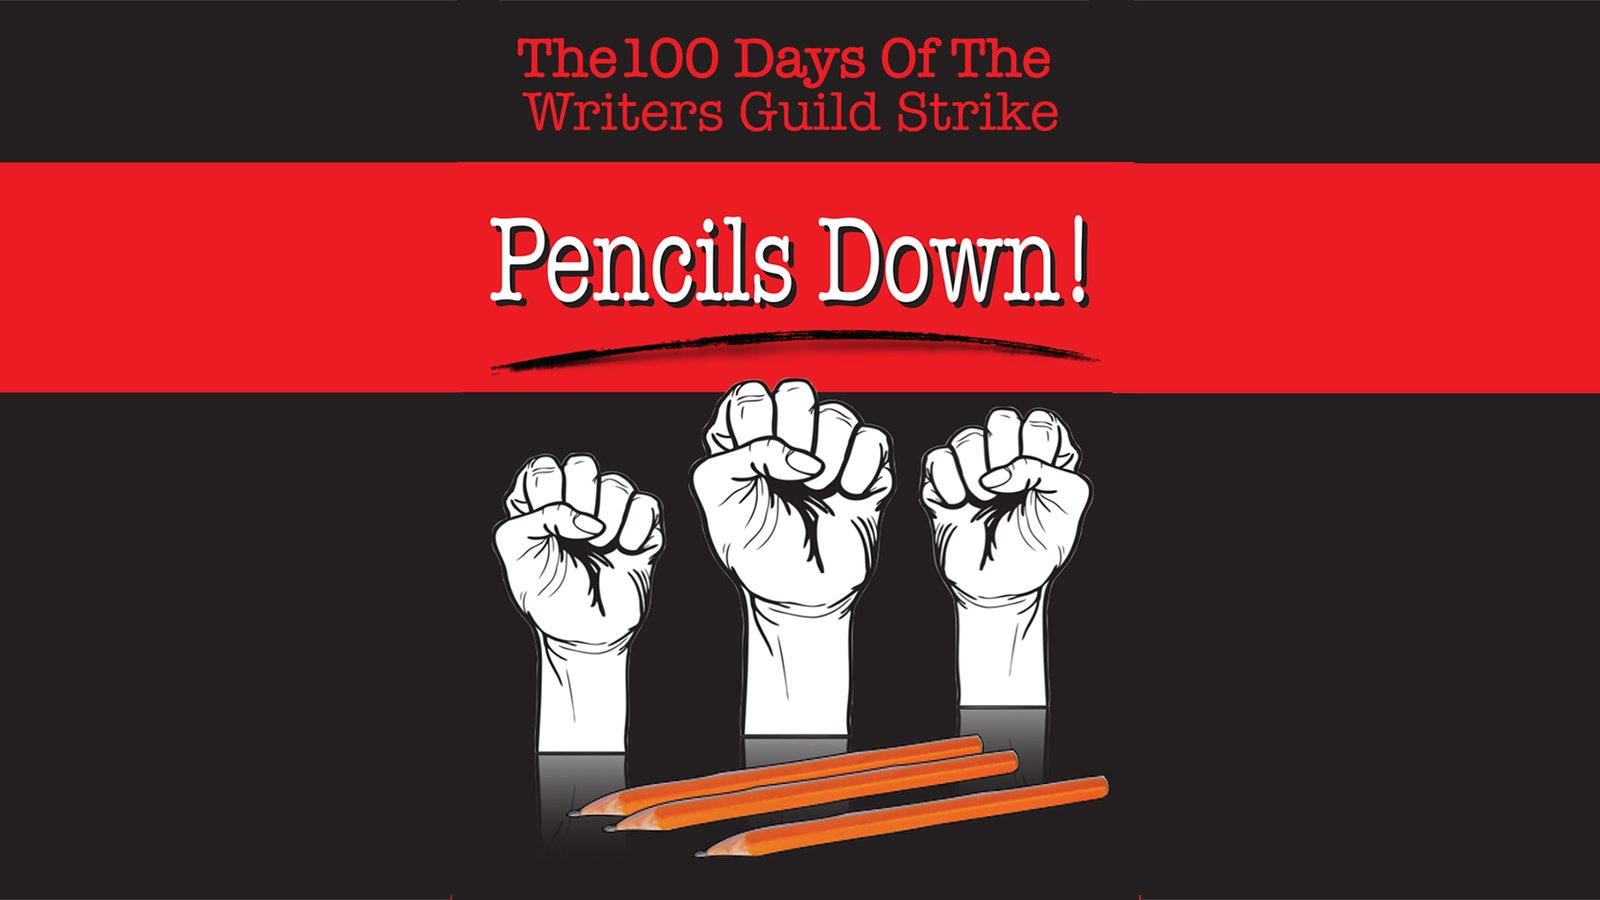 Pencils Down! The 100 Days of the Writers